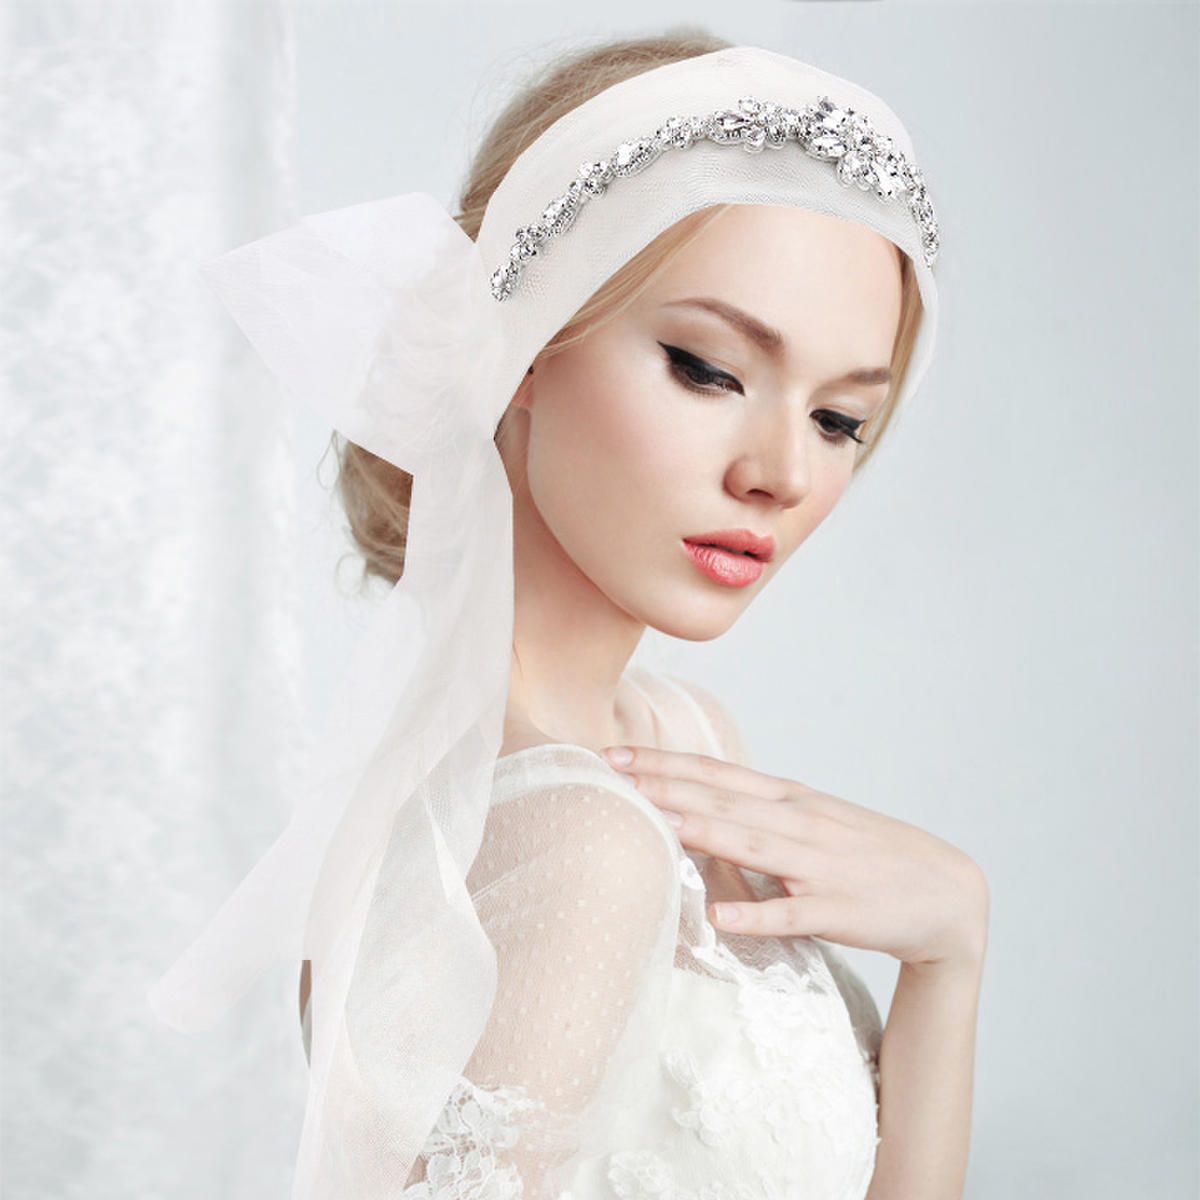 WONA TRADING INC - Crystal Embellished Bridal WEdding Mesh Headband